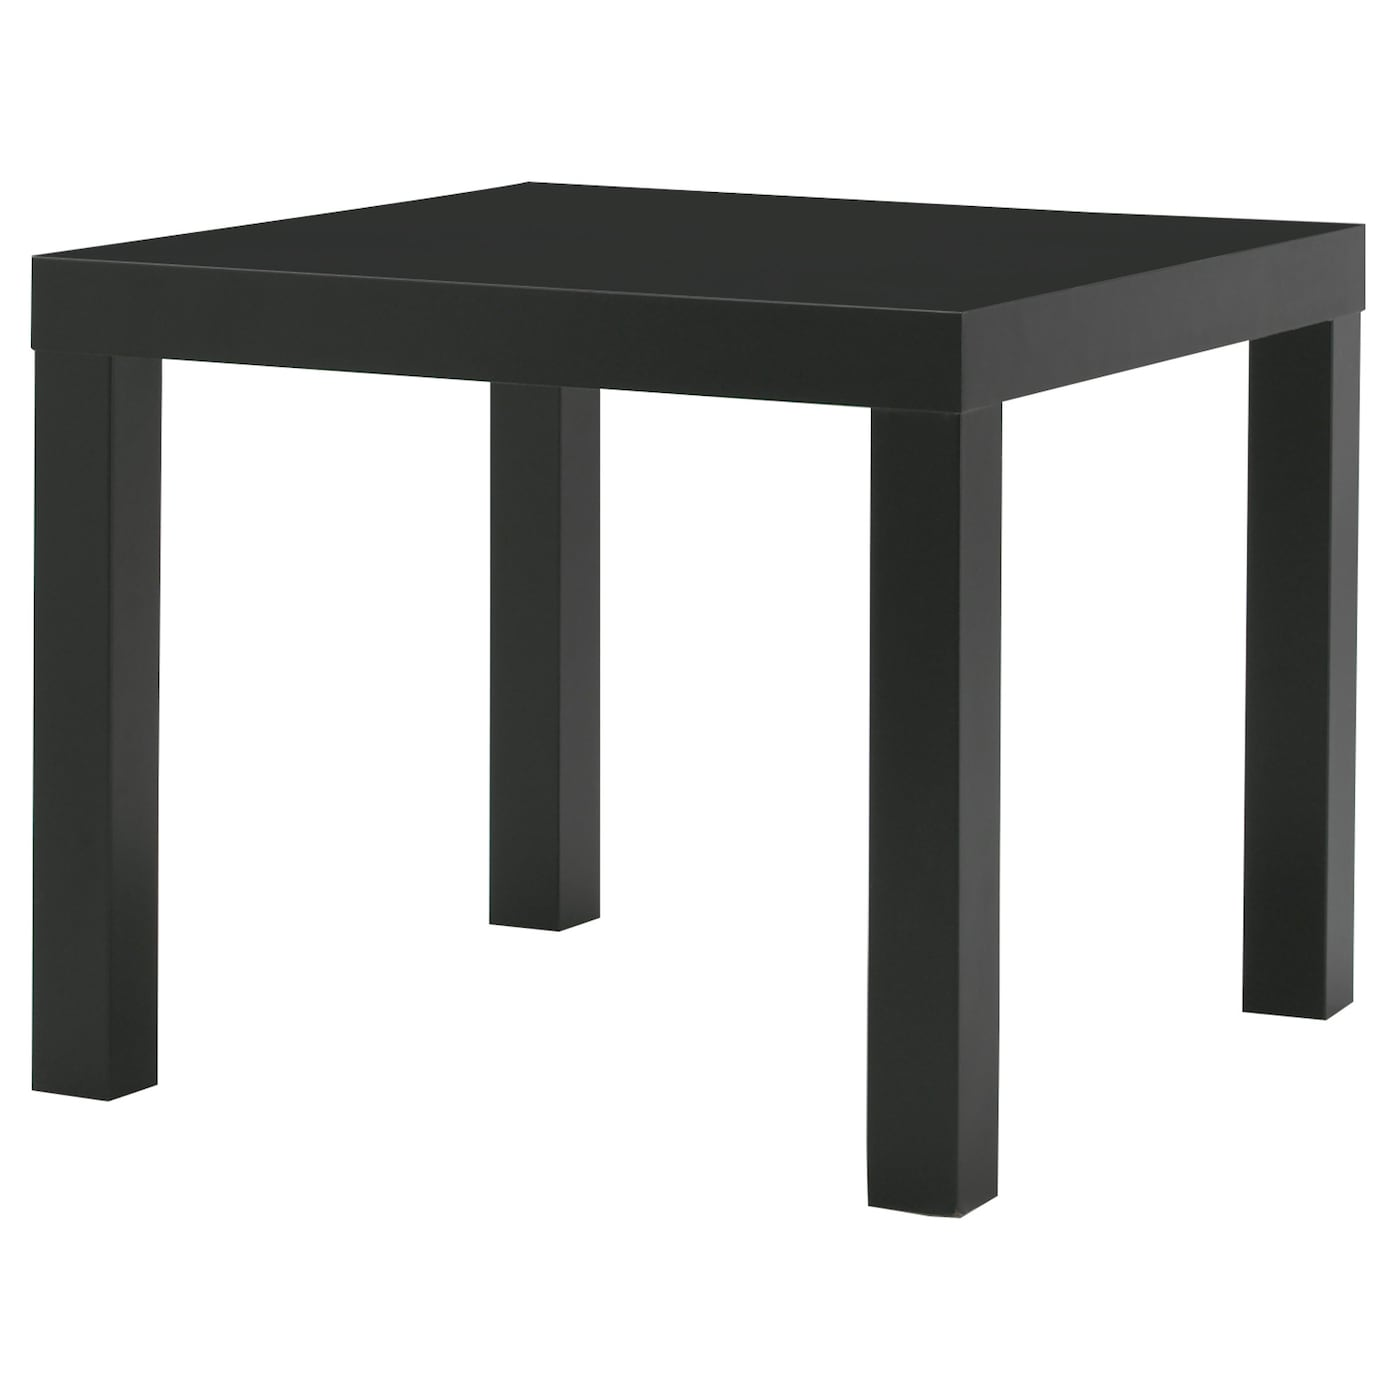 Lack side table black 55x55 cm ikea - Mesa auxiliar malm ikea ...